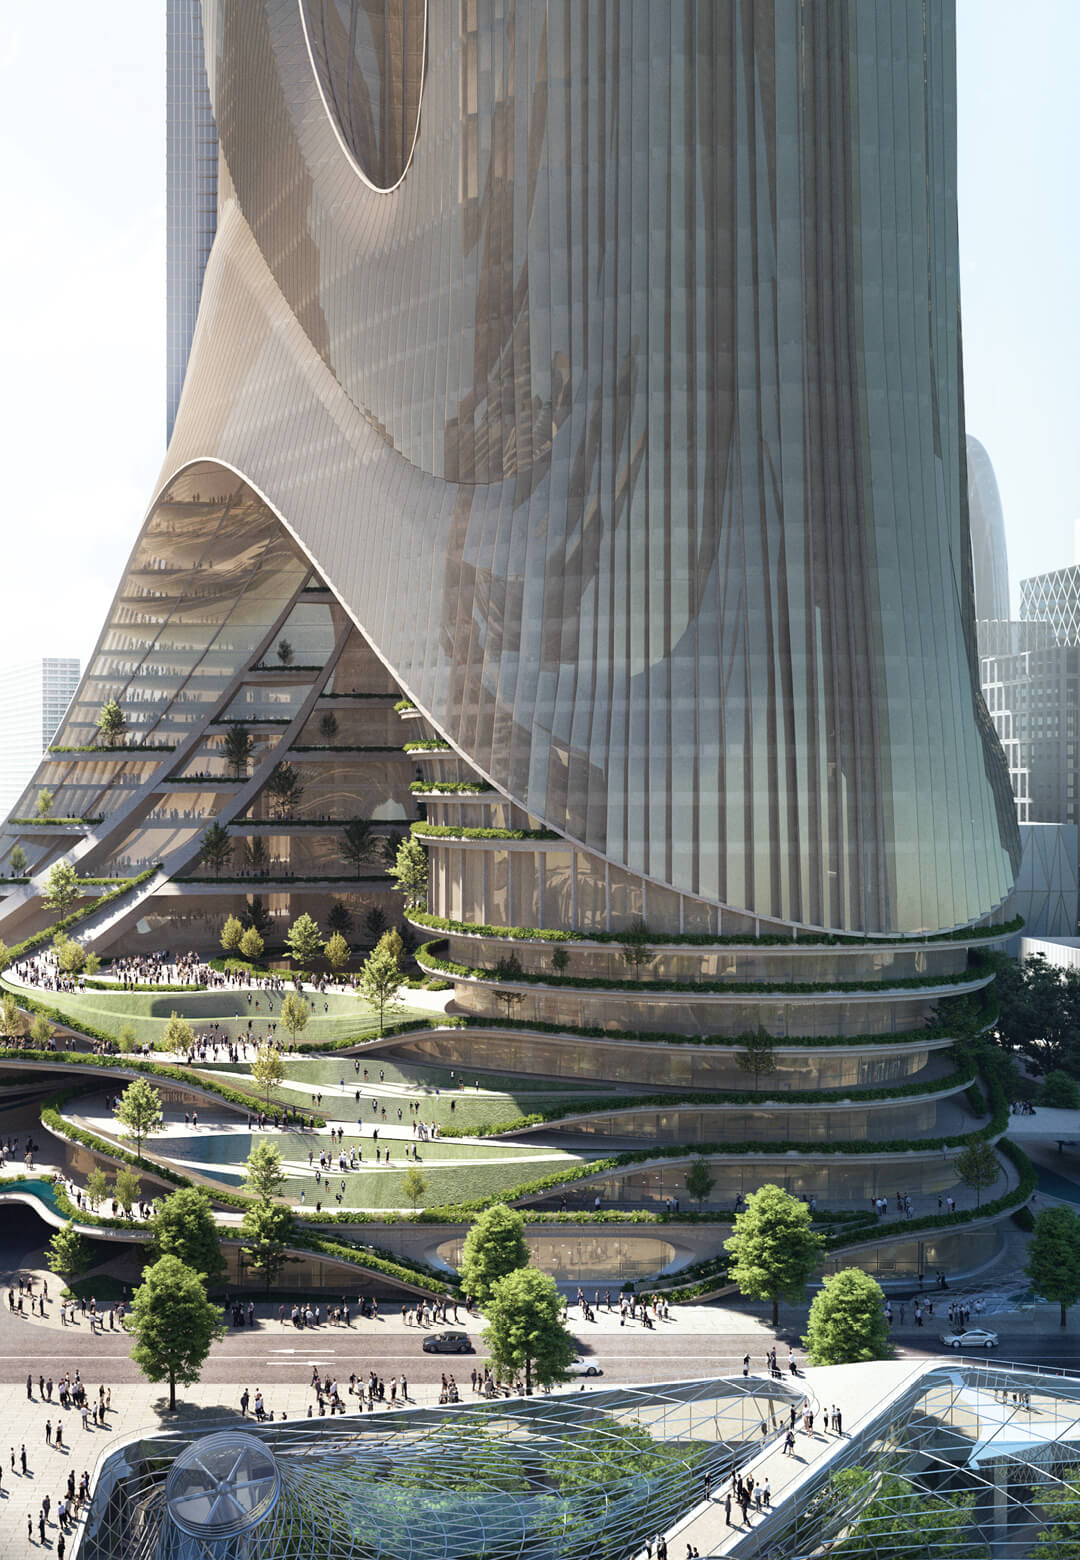 Tower C imagined by Zaha Hadid Architects within the Shenzhen Bay Super Headquarters Base | Tower C by Zaha Hadid Architects within the Shenzhen Bay Super Headquarters Base | STIRworld